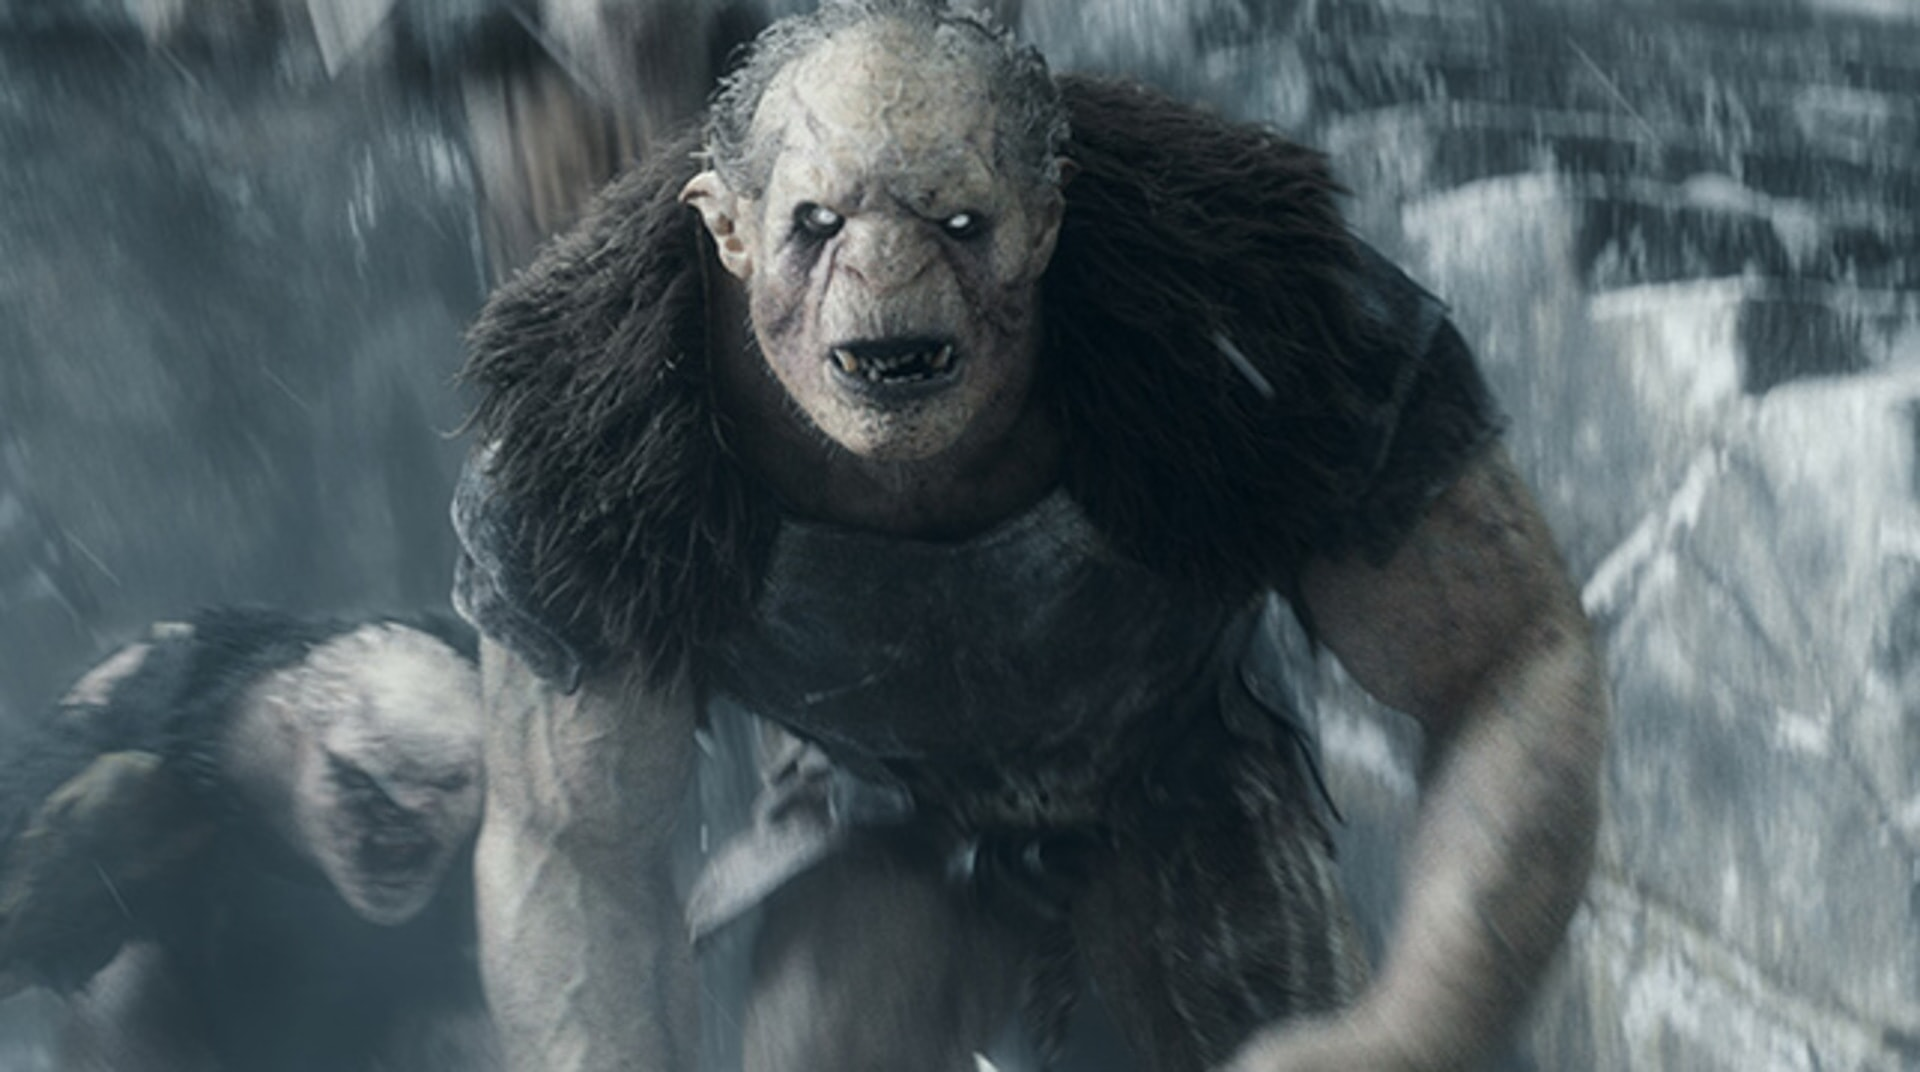 The Hobbit: The Battle of the Five Armies - Image 31